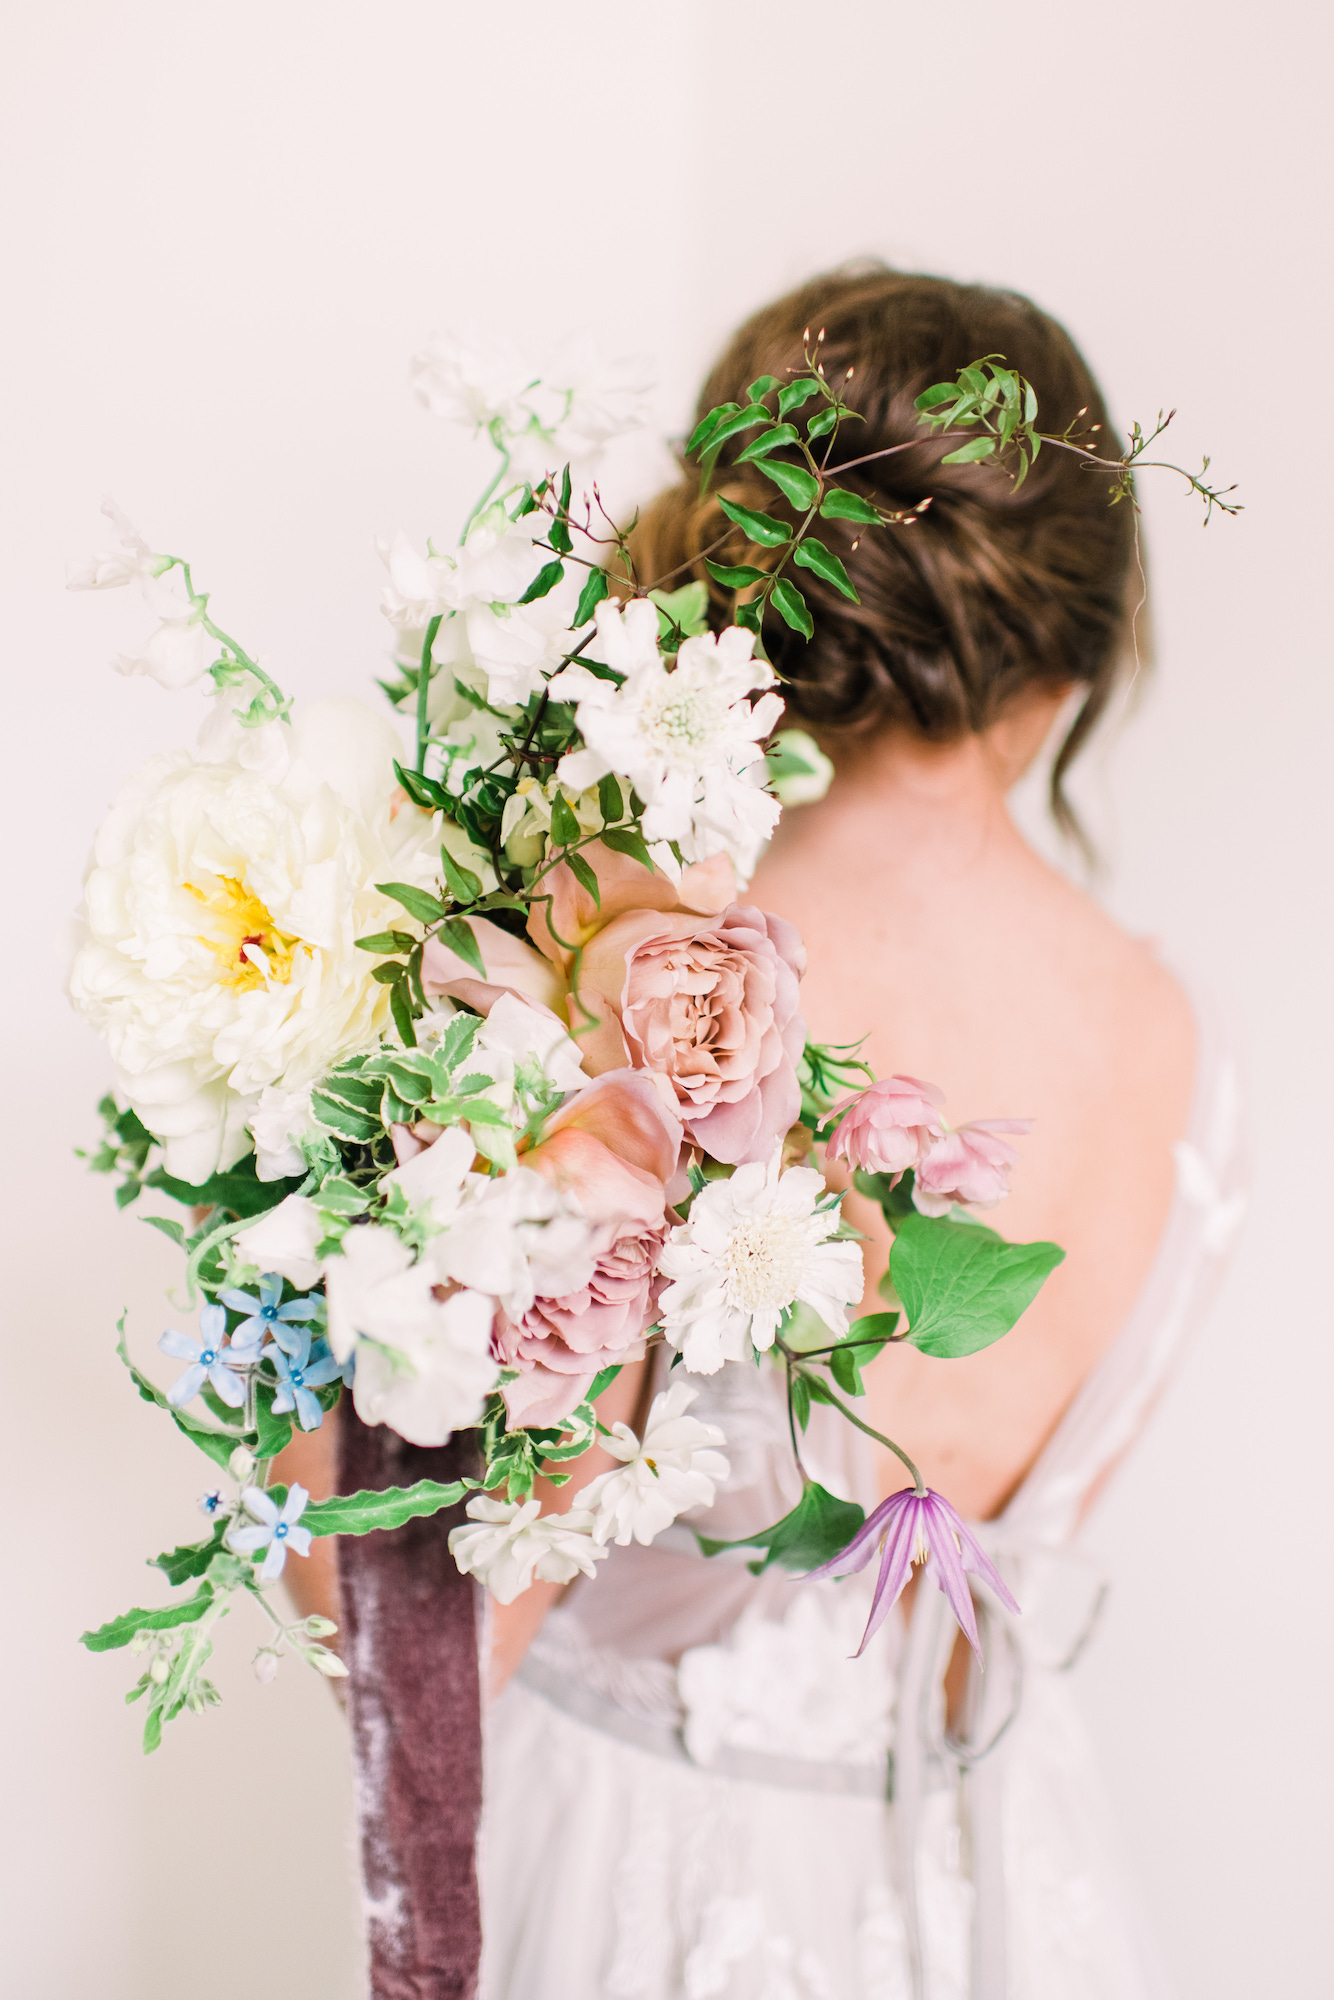 Sojourn-Weddings-Floral-Designer-Flat-Lay-Workshop-Houston-25.jpg